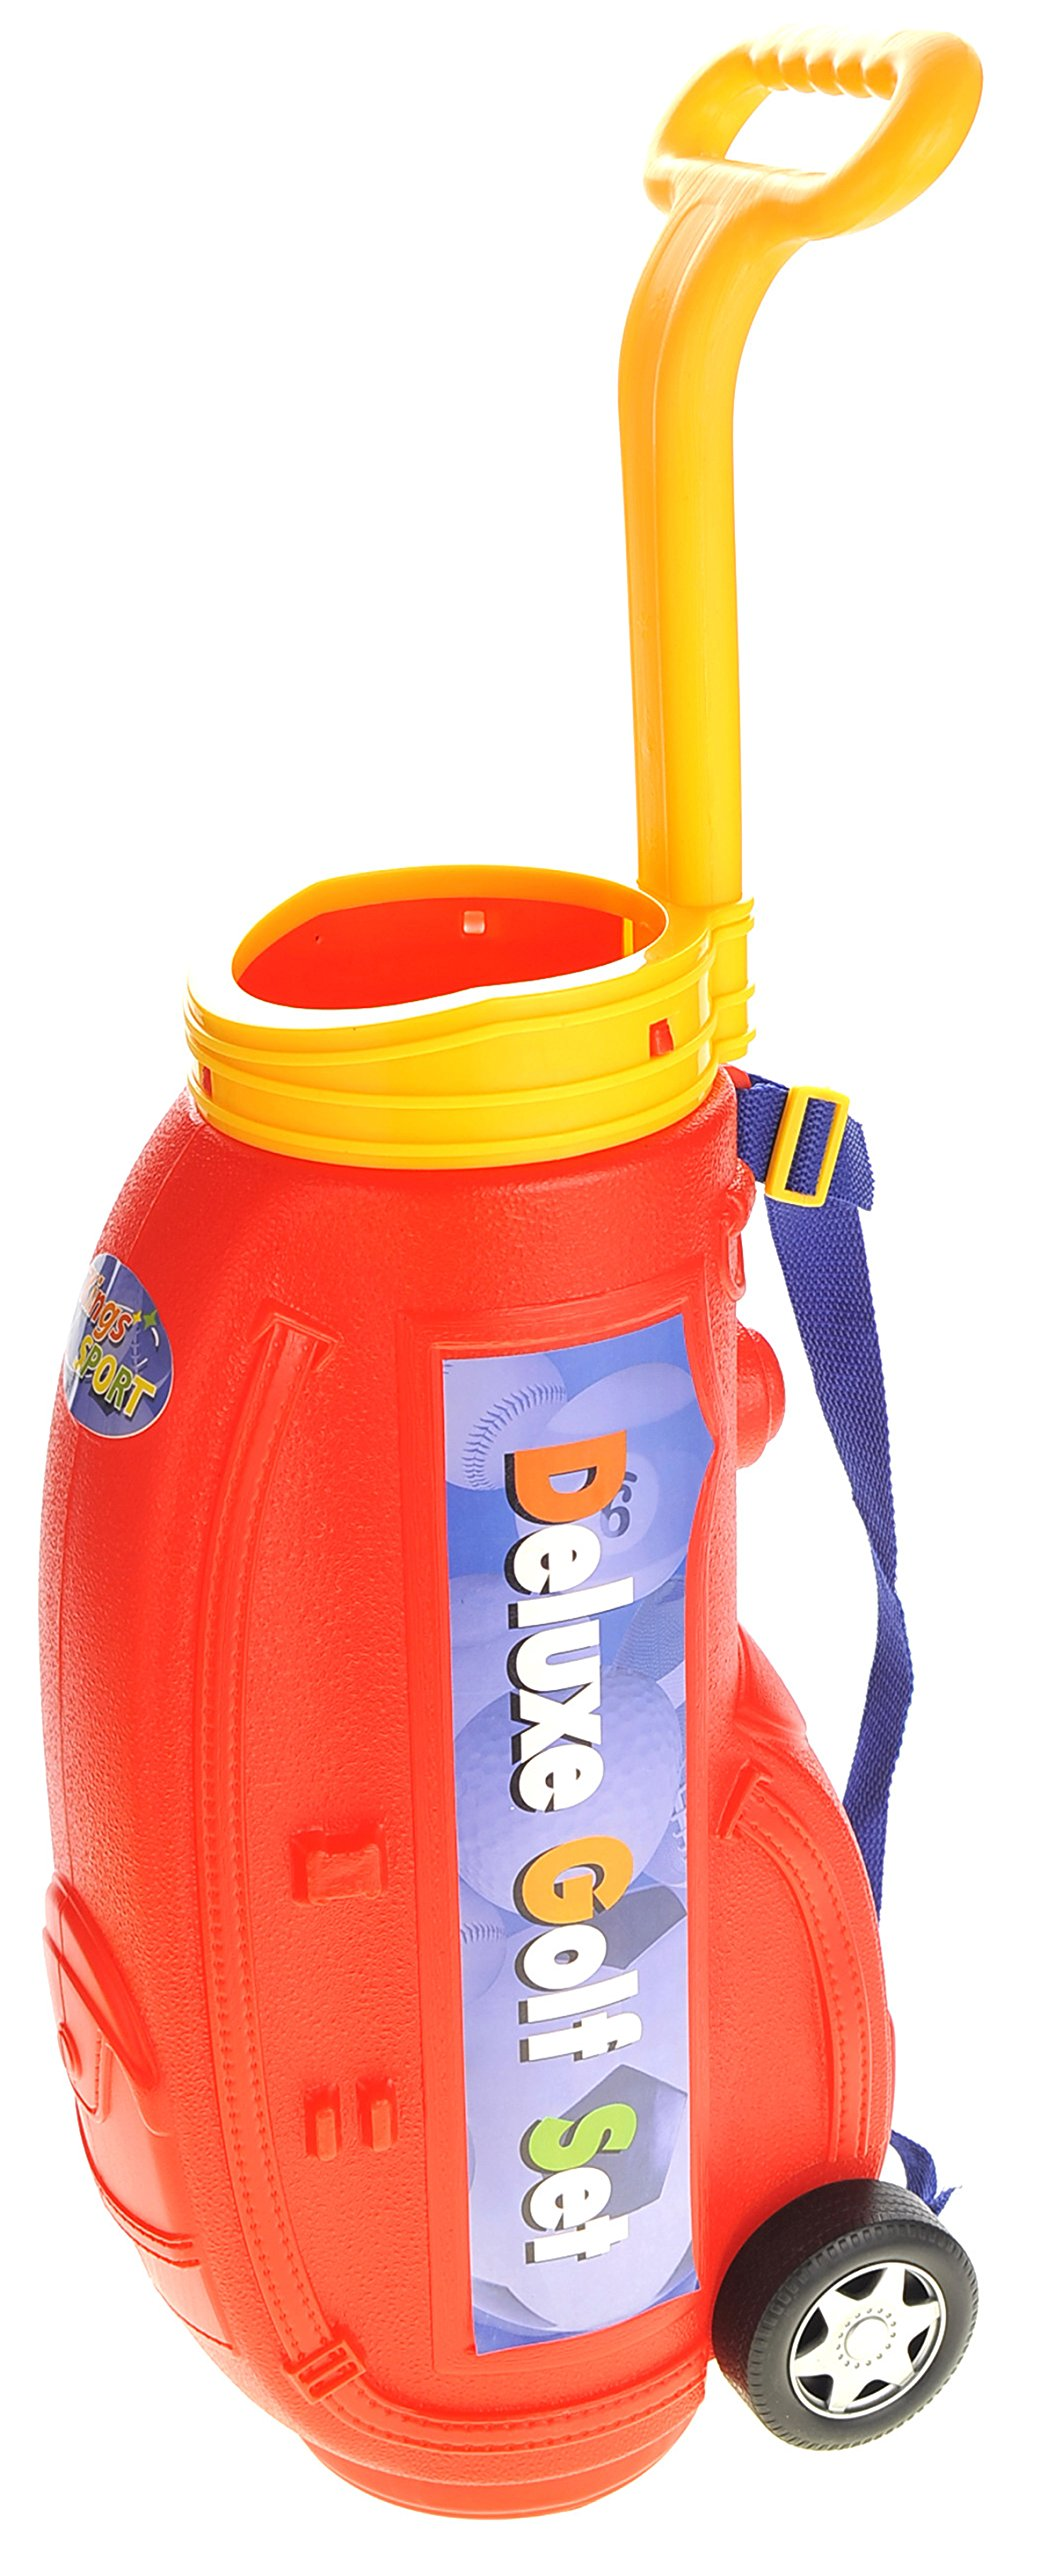 CHIMAERA Complete Kiddie Golf Pro Toy Set with Bag by Chi Mercantile